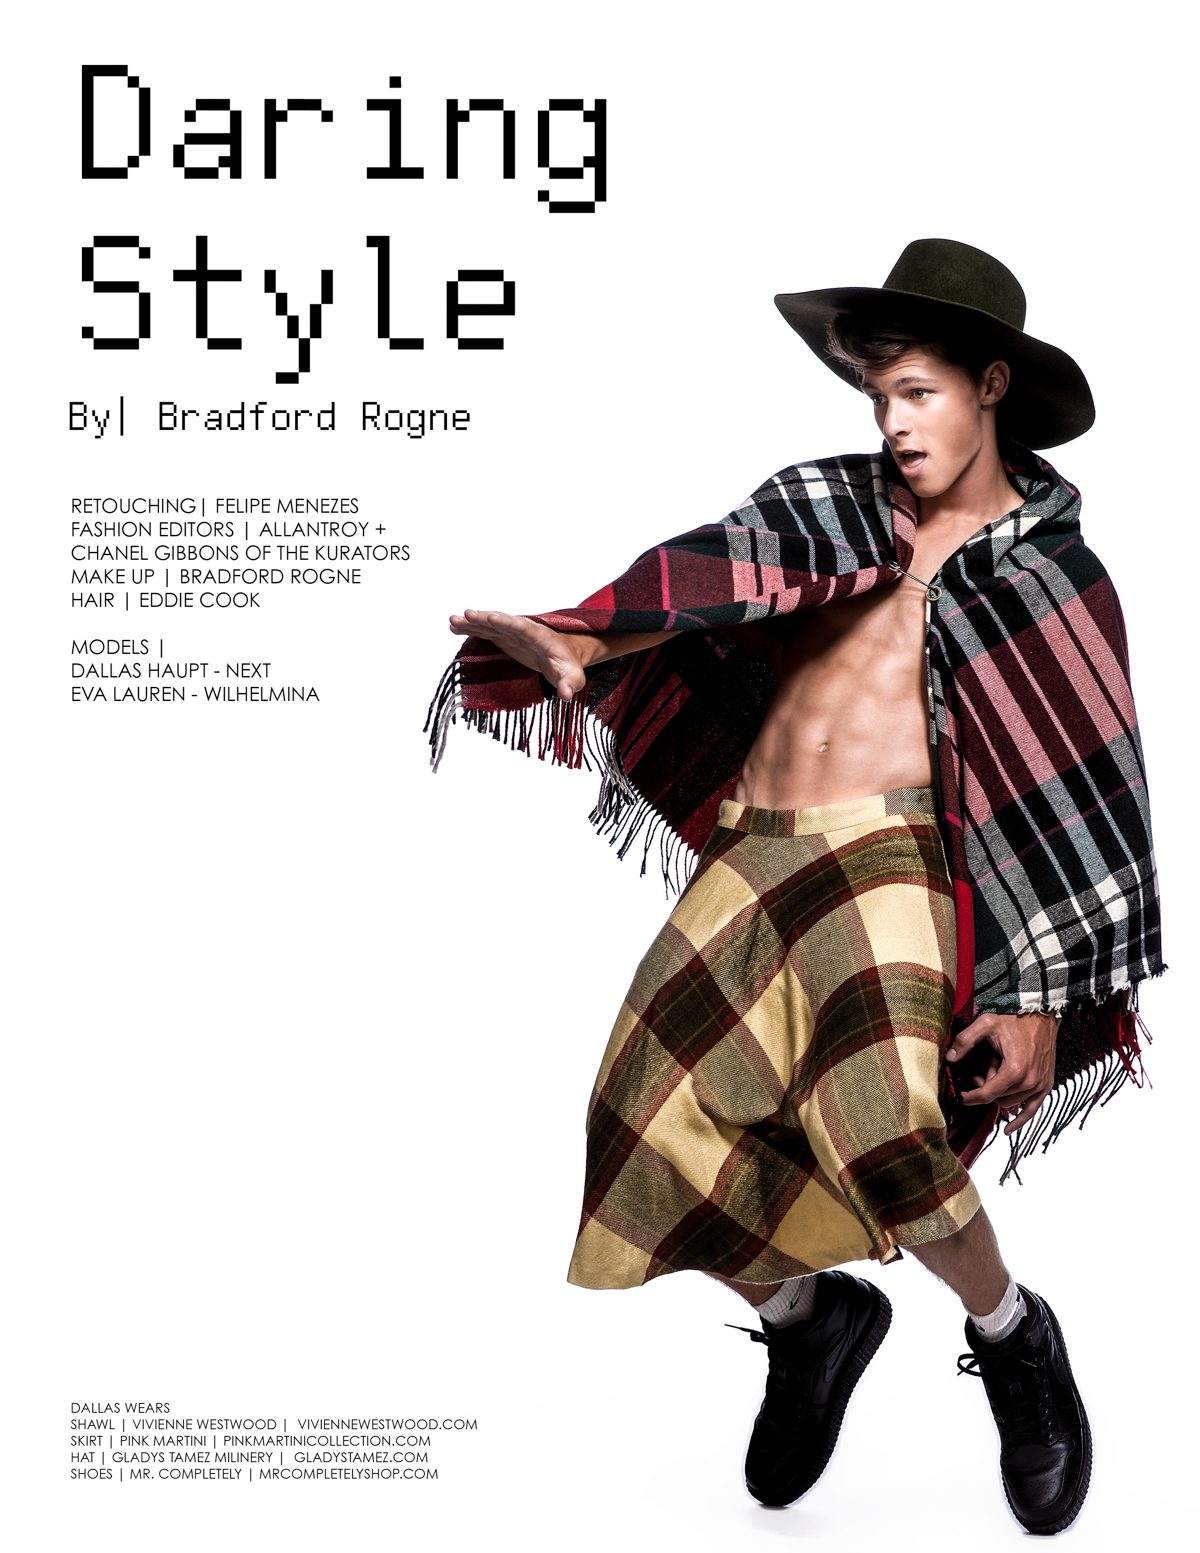 Daring Style Photographed by Bradford Rogne